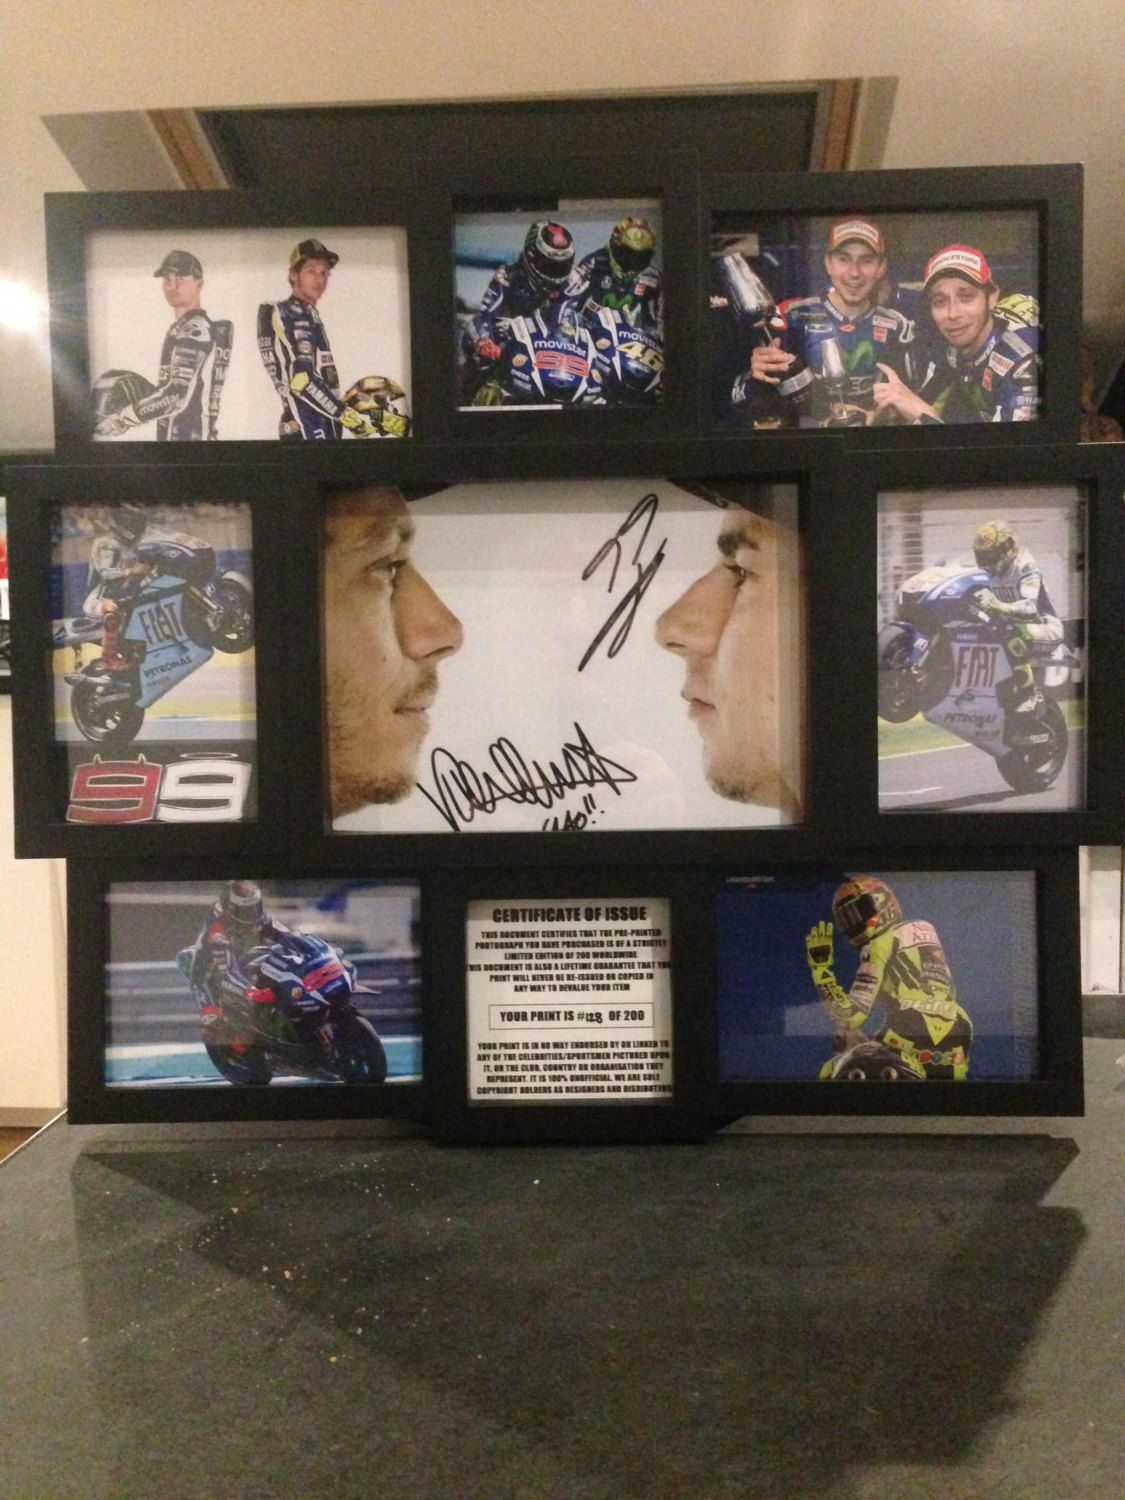 Valentino Rossi Jorge Lorenzo By Route66store On Etsy VR 46